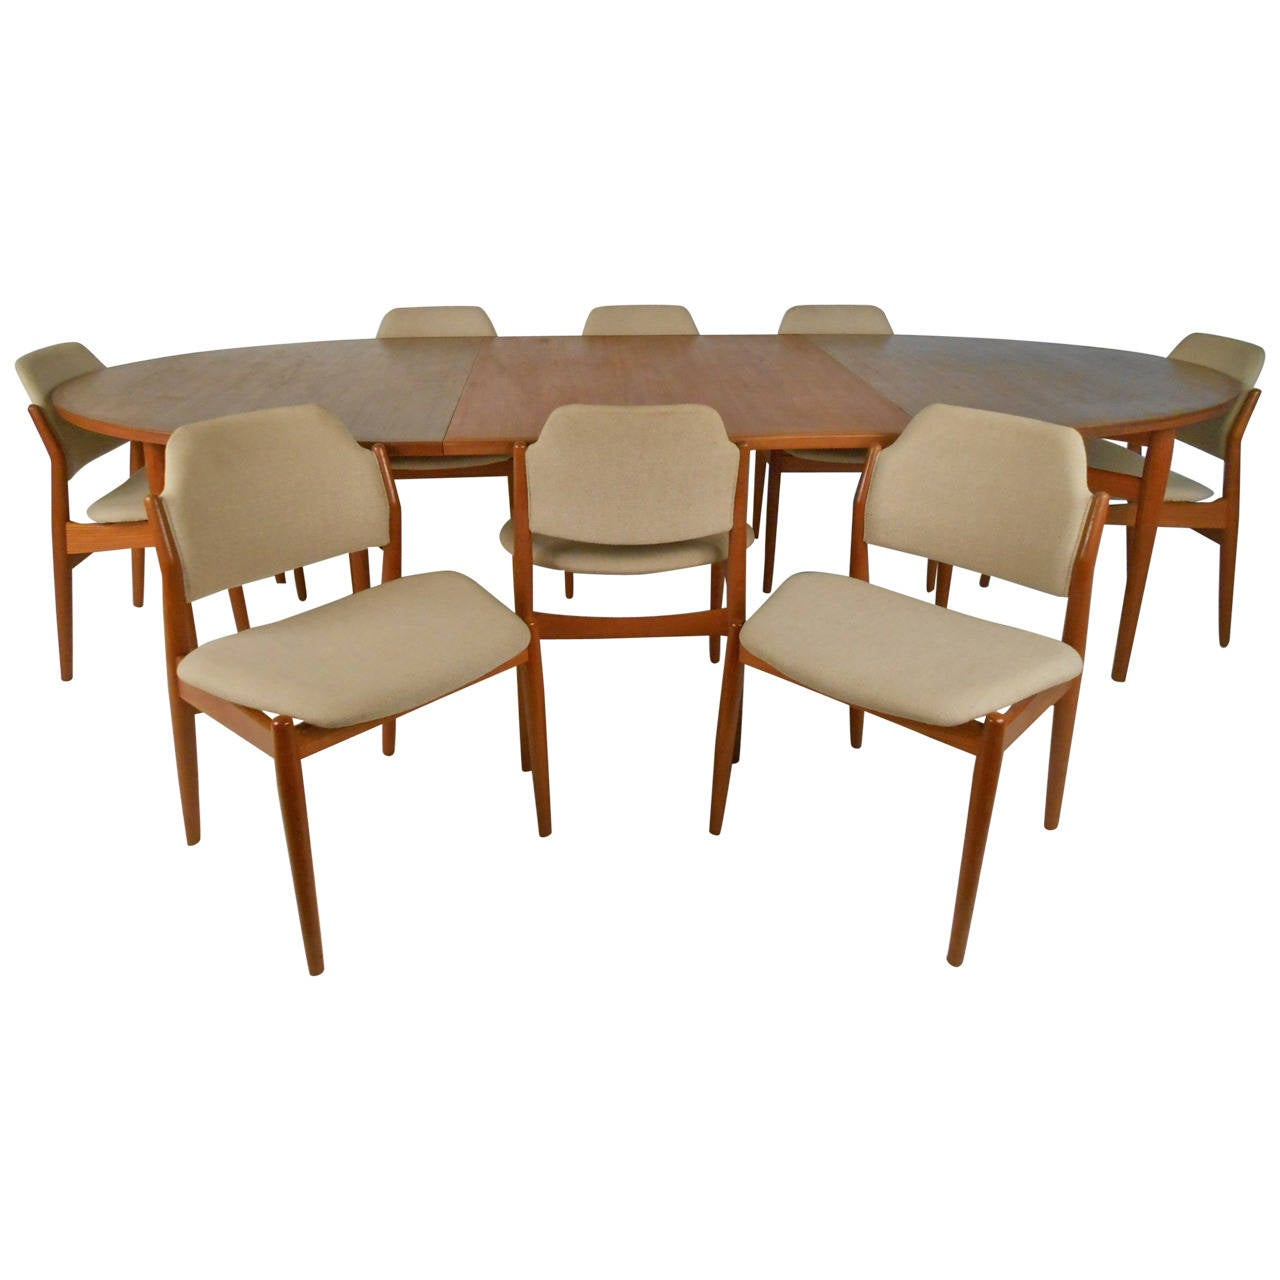 scandinavian modern teak dining set with eight chairs by arne vodder for sibast for sale at 1stdibs. Black Bedroom Furniture Sets. Home Design Ideas